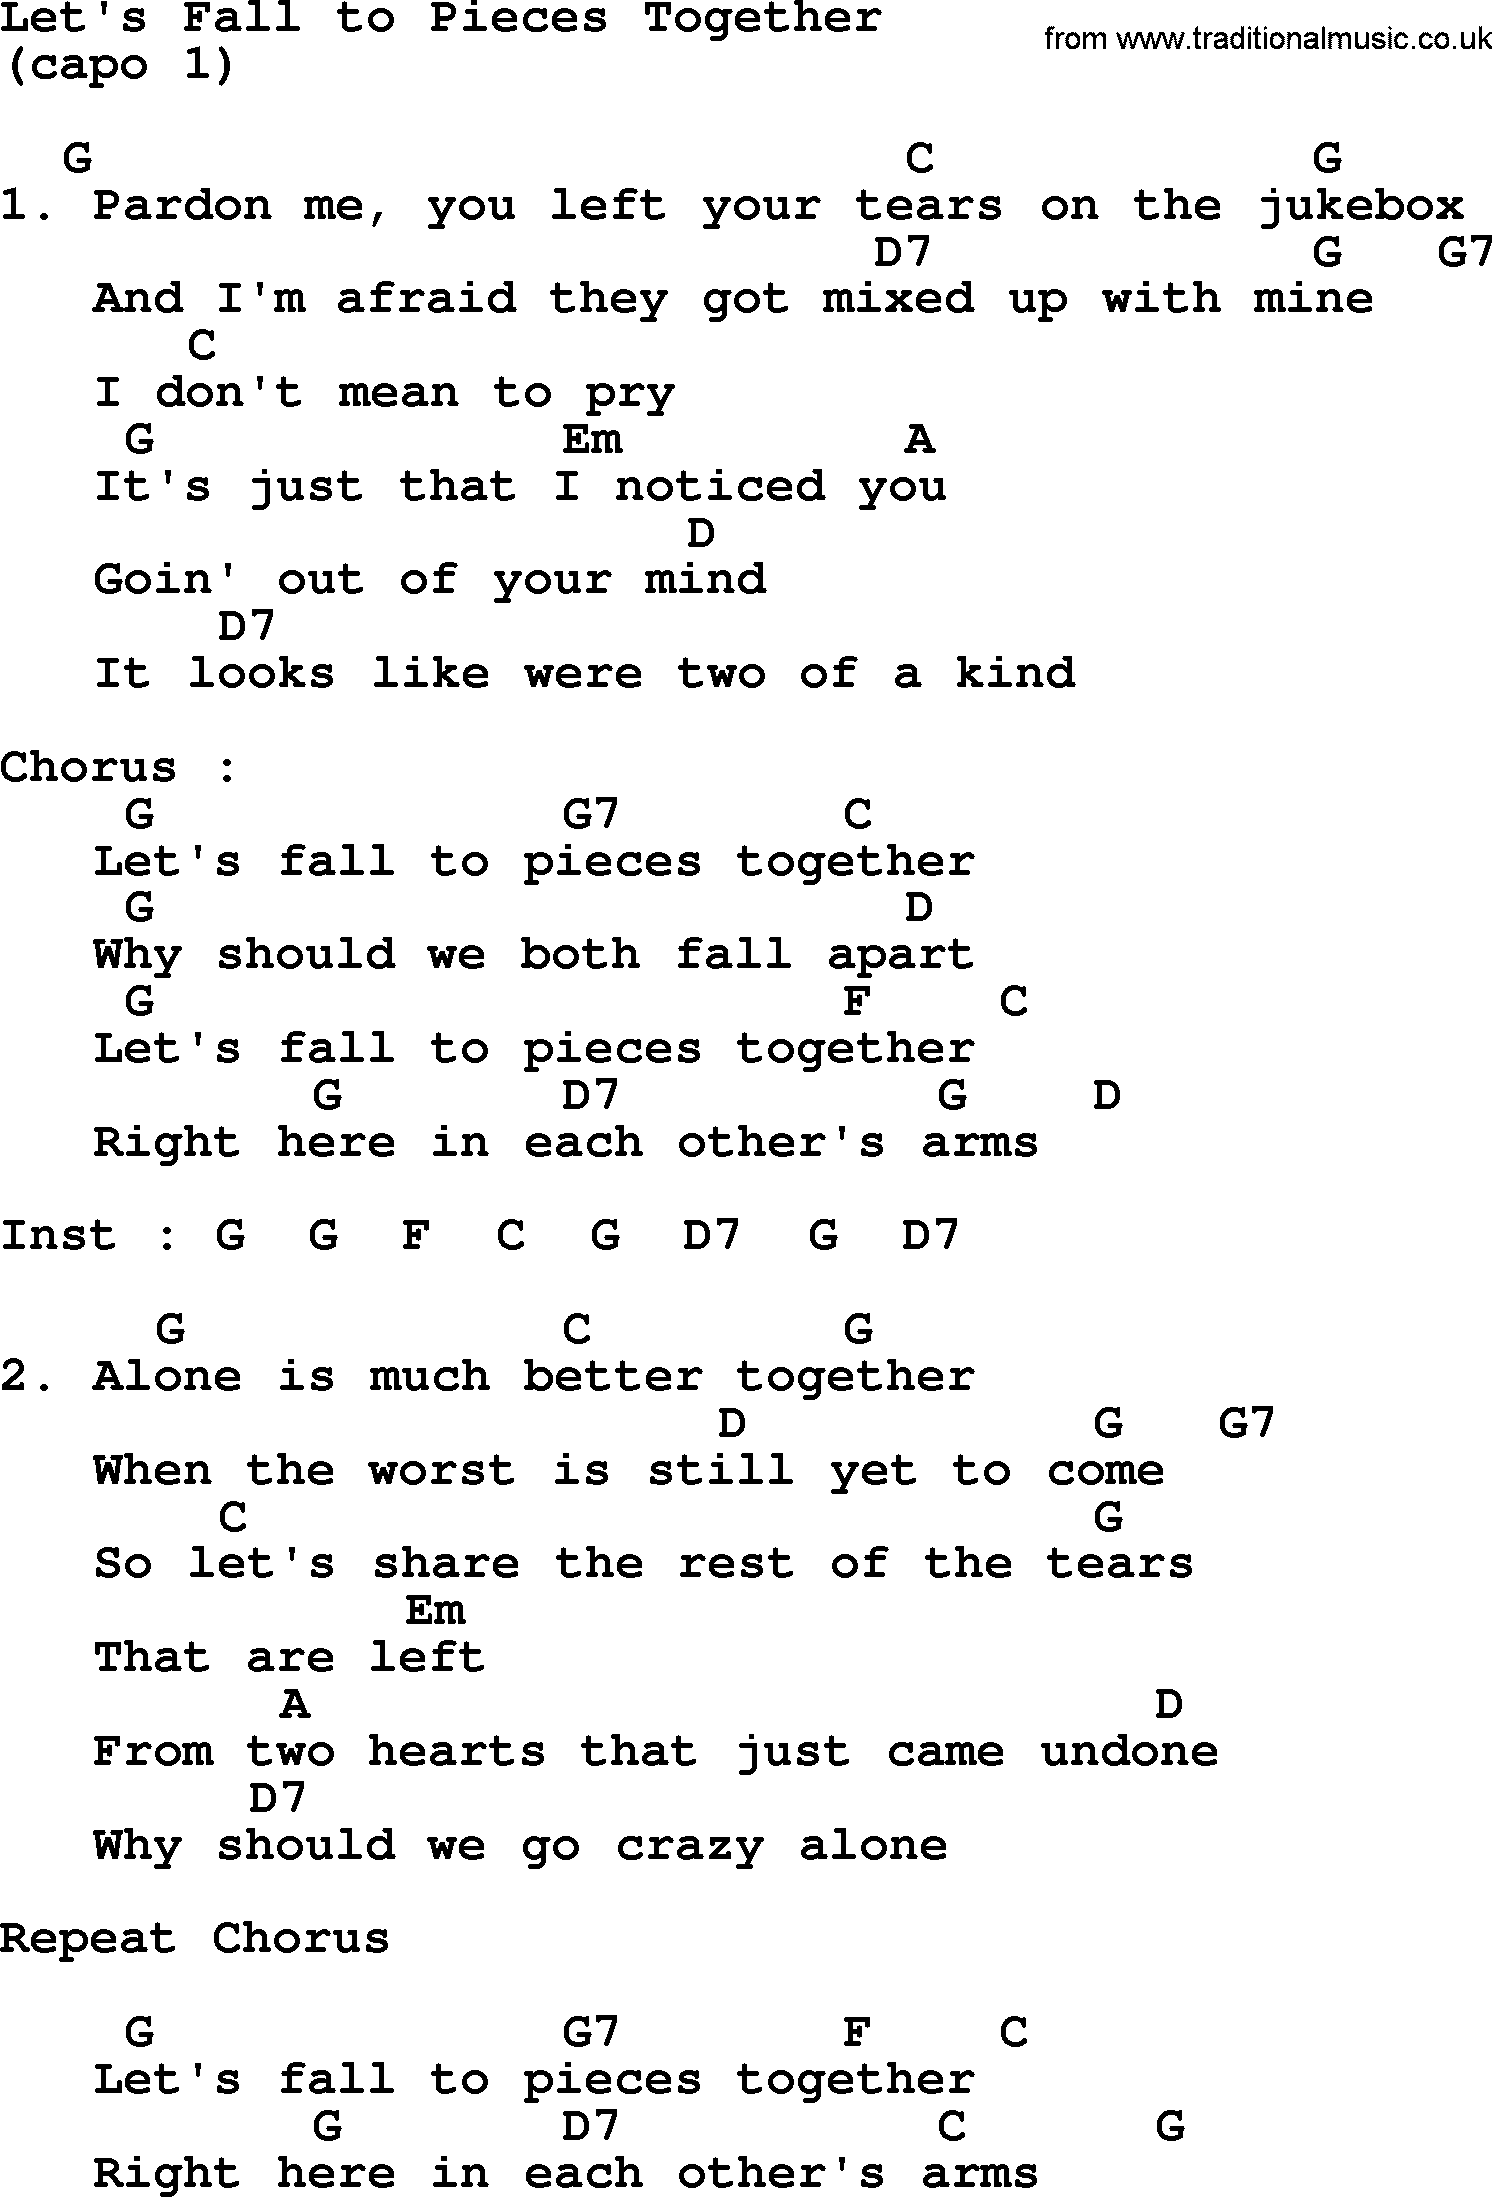 Lets Fall To Pieces Together By George Strait Lyrics And Chords